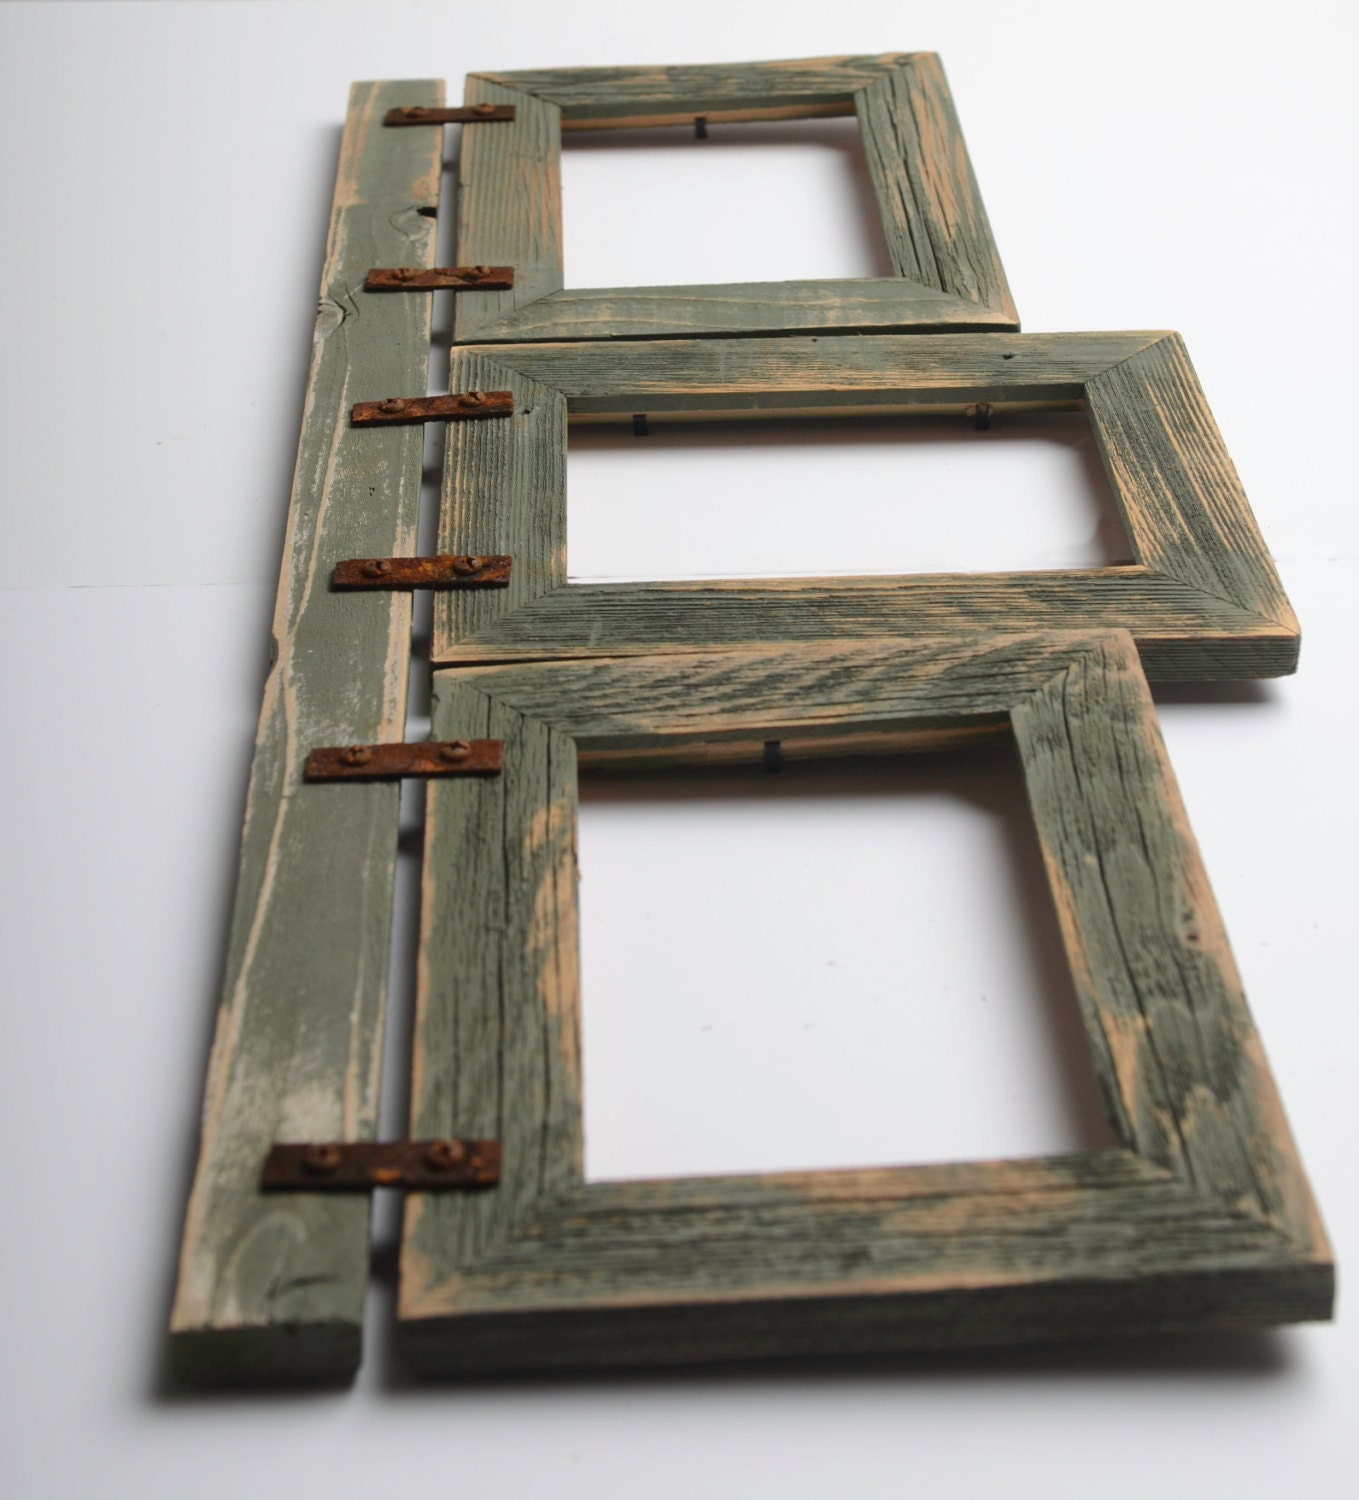 2 barnwood collage sage frame 3 5x7 multi opening. Black Bedroom Furniture Sets. Home Design Ideas